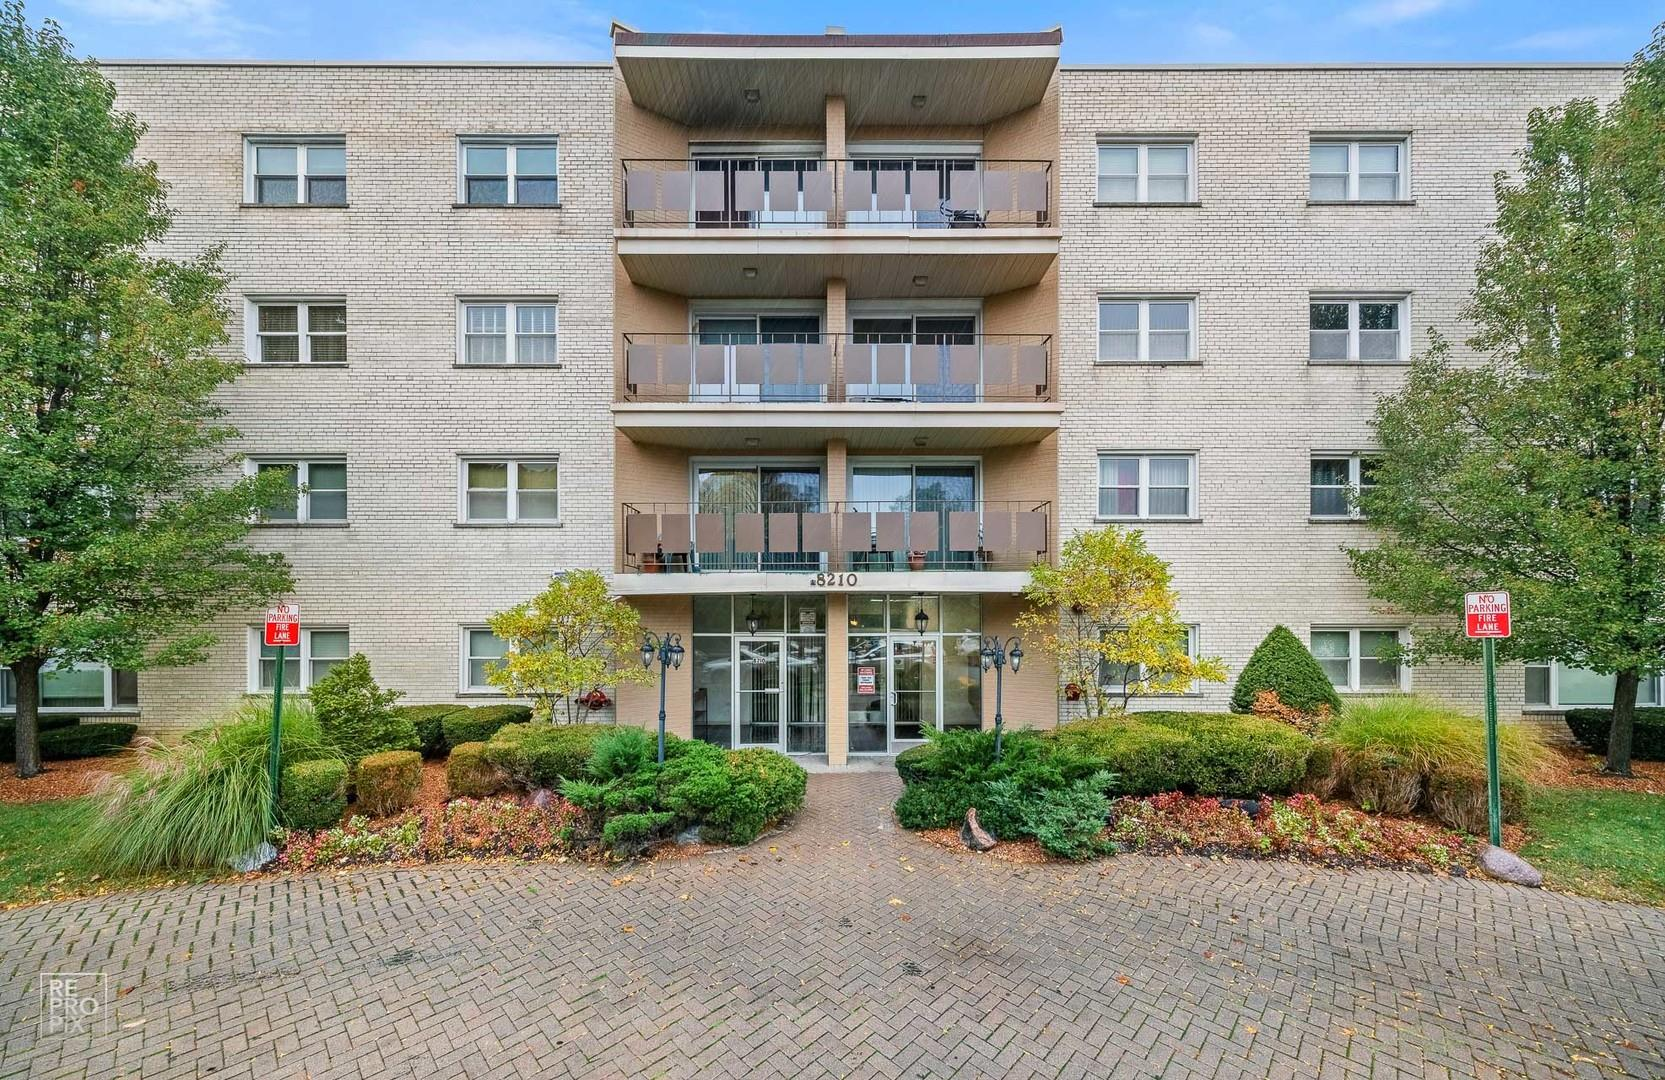 8210 Elmwood Avenue #312, Skokie, IL 60077 - #: 10931957